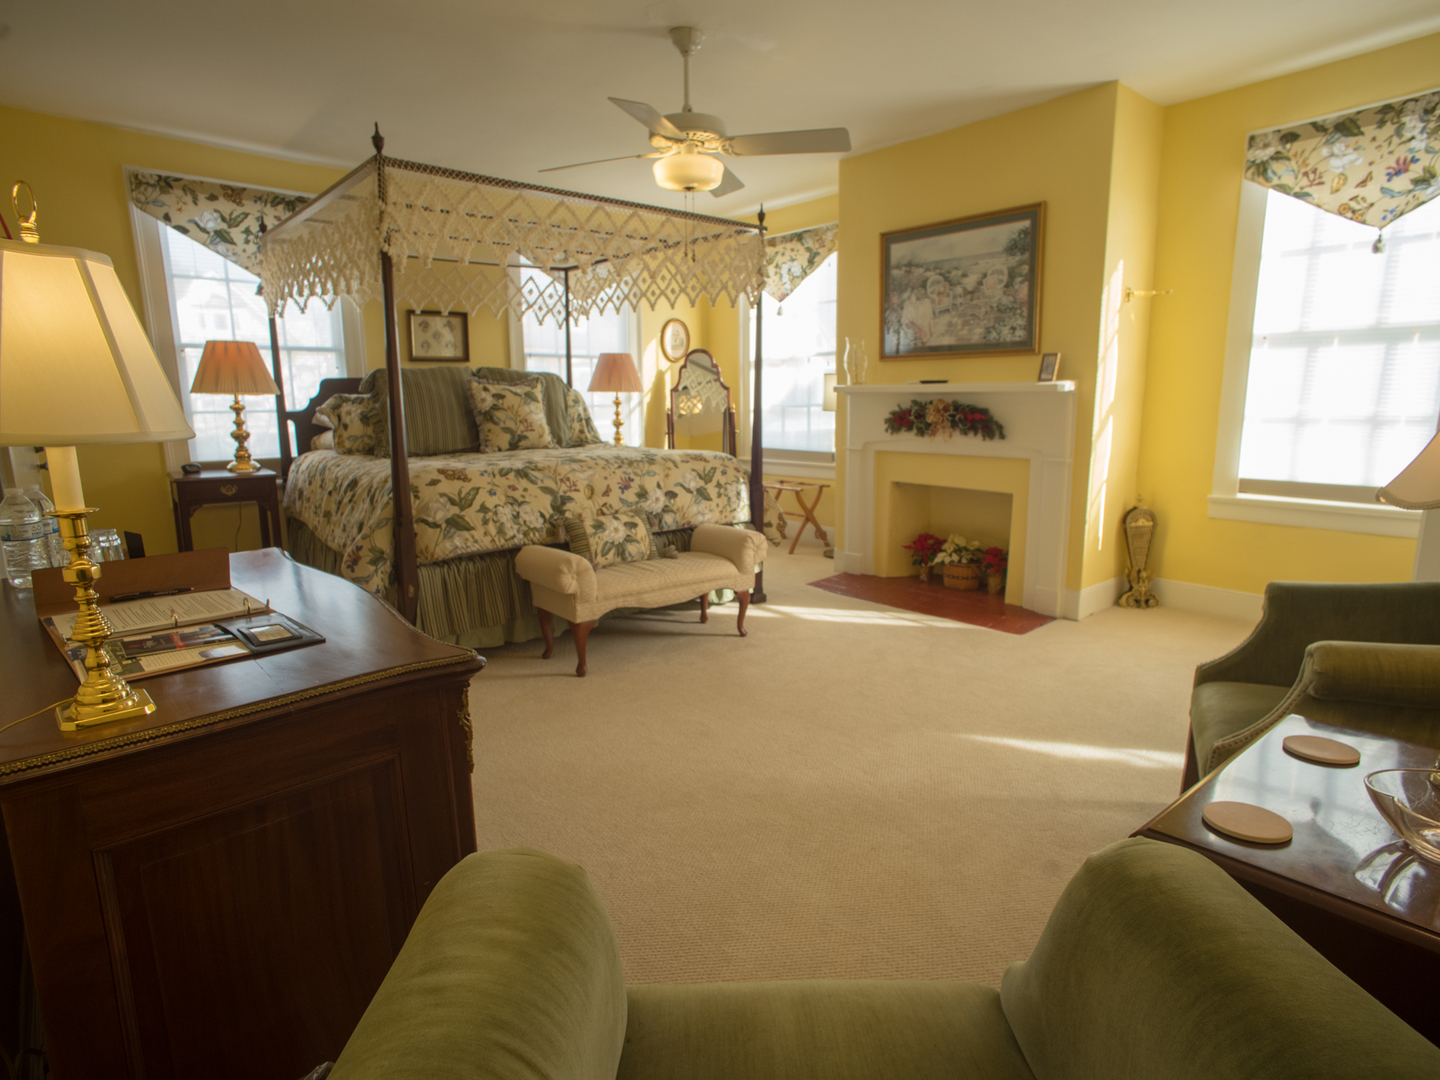 A living room filled with furniture and a large window at Benjamin Ellis House Bed & Breakfast.